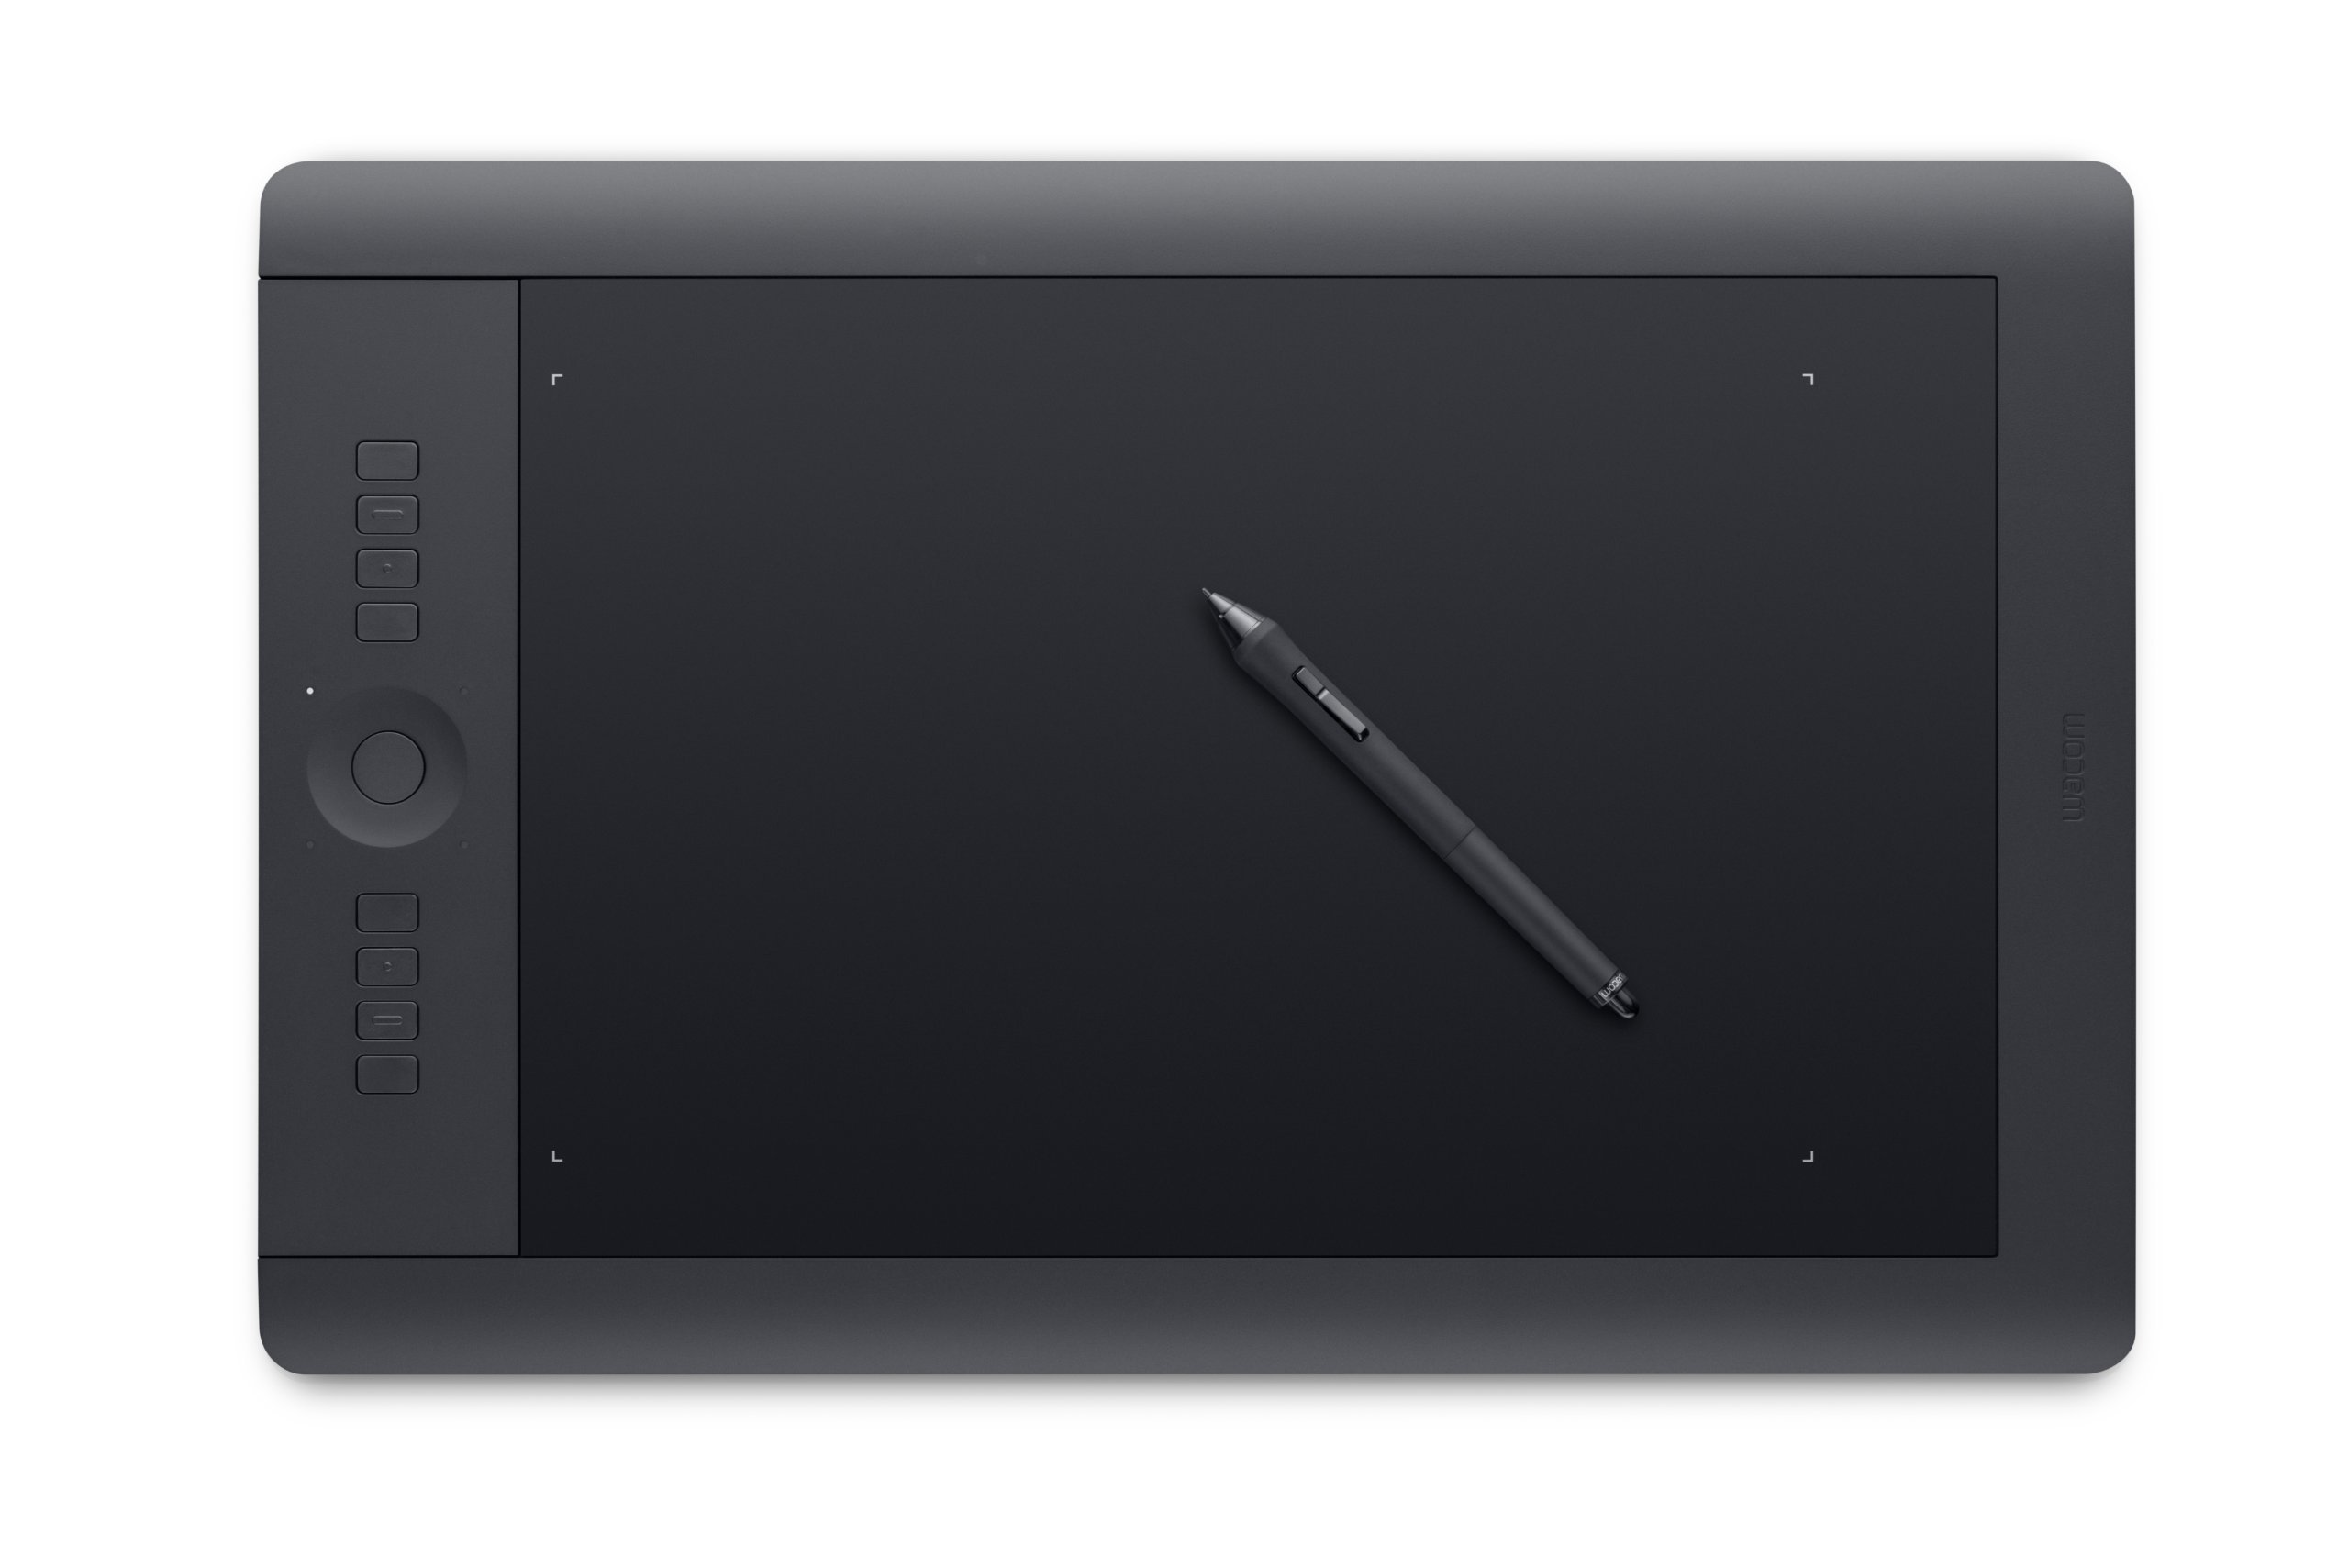 Wacom Intuos Pro Pen and Touch Large Tablet (PTH851) OLD MODEL (Certified Refurbished)